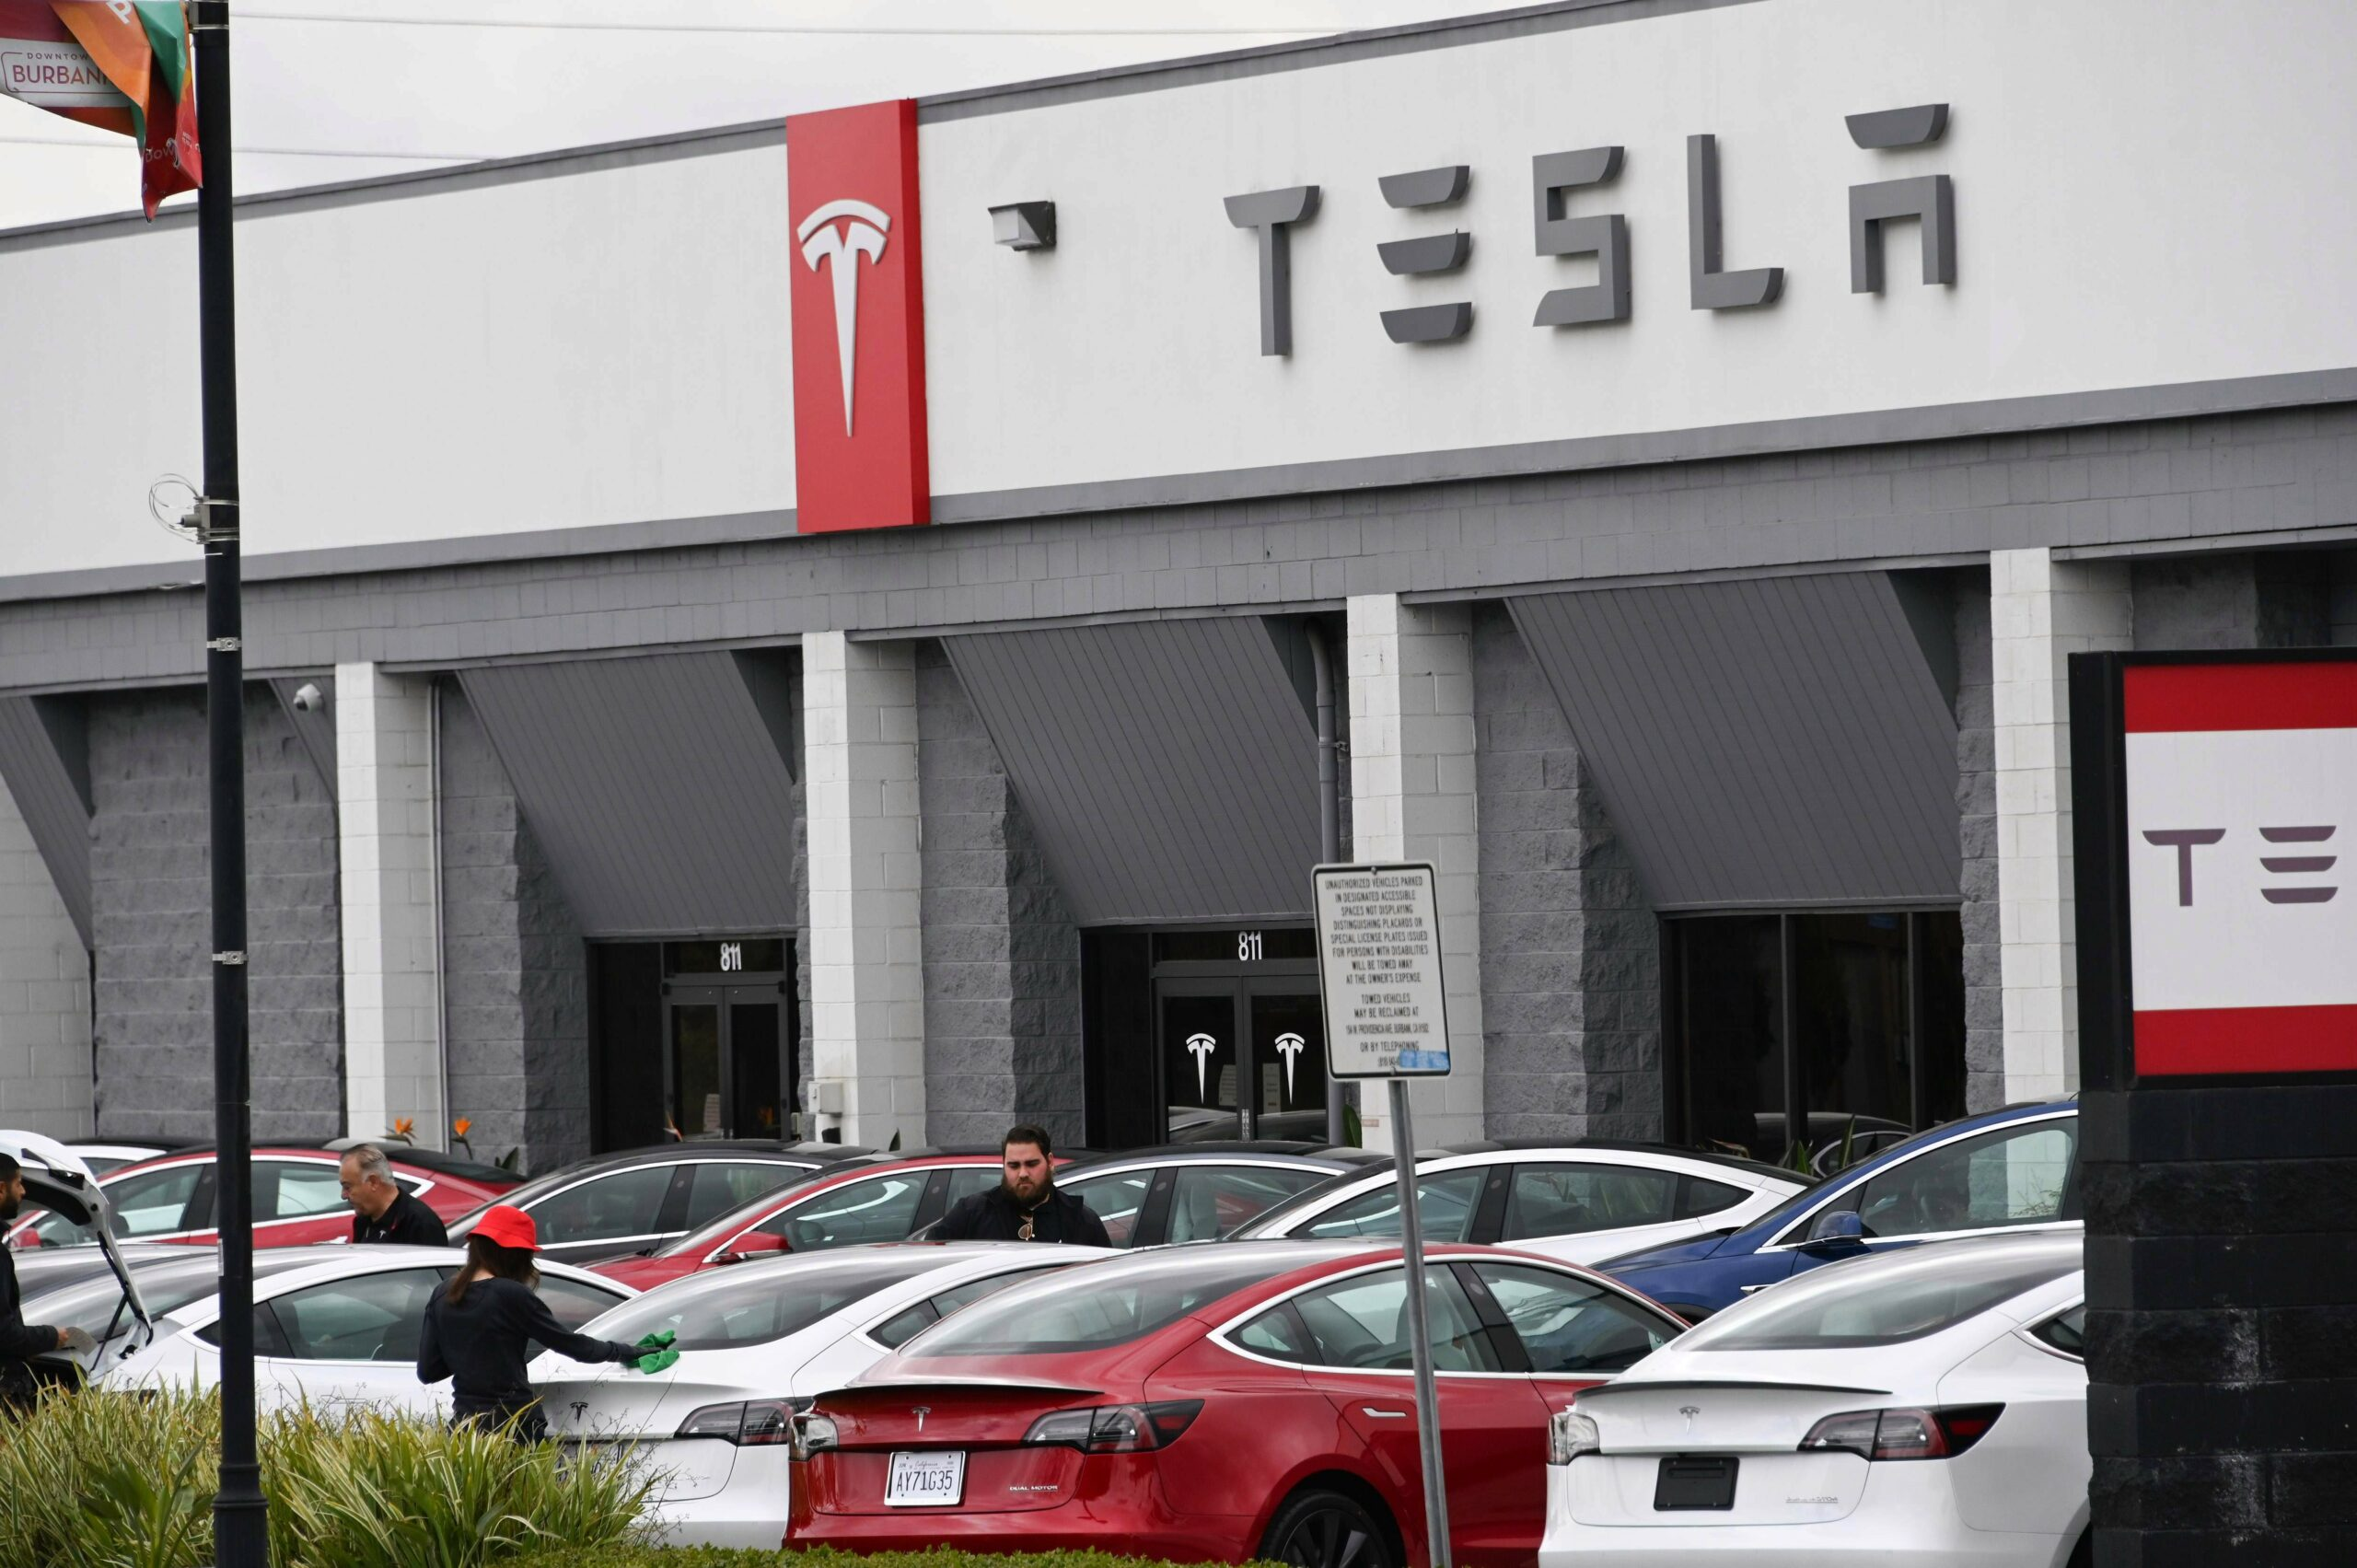 The network outage was said to be one of the 'most wide-ranging' in Tesla's history